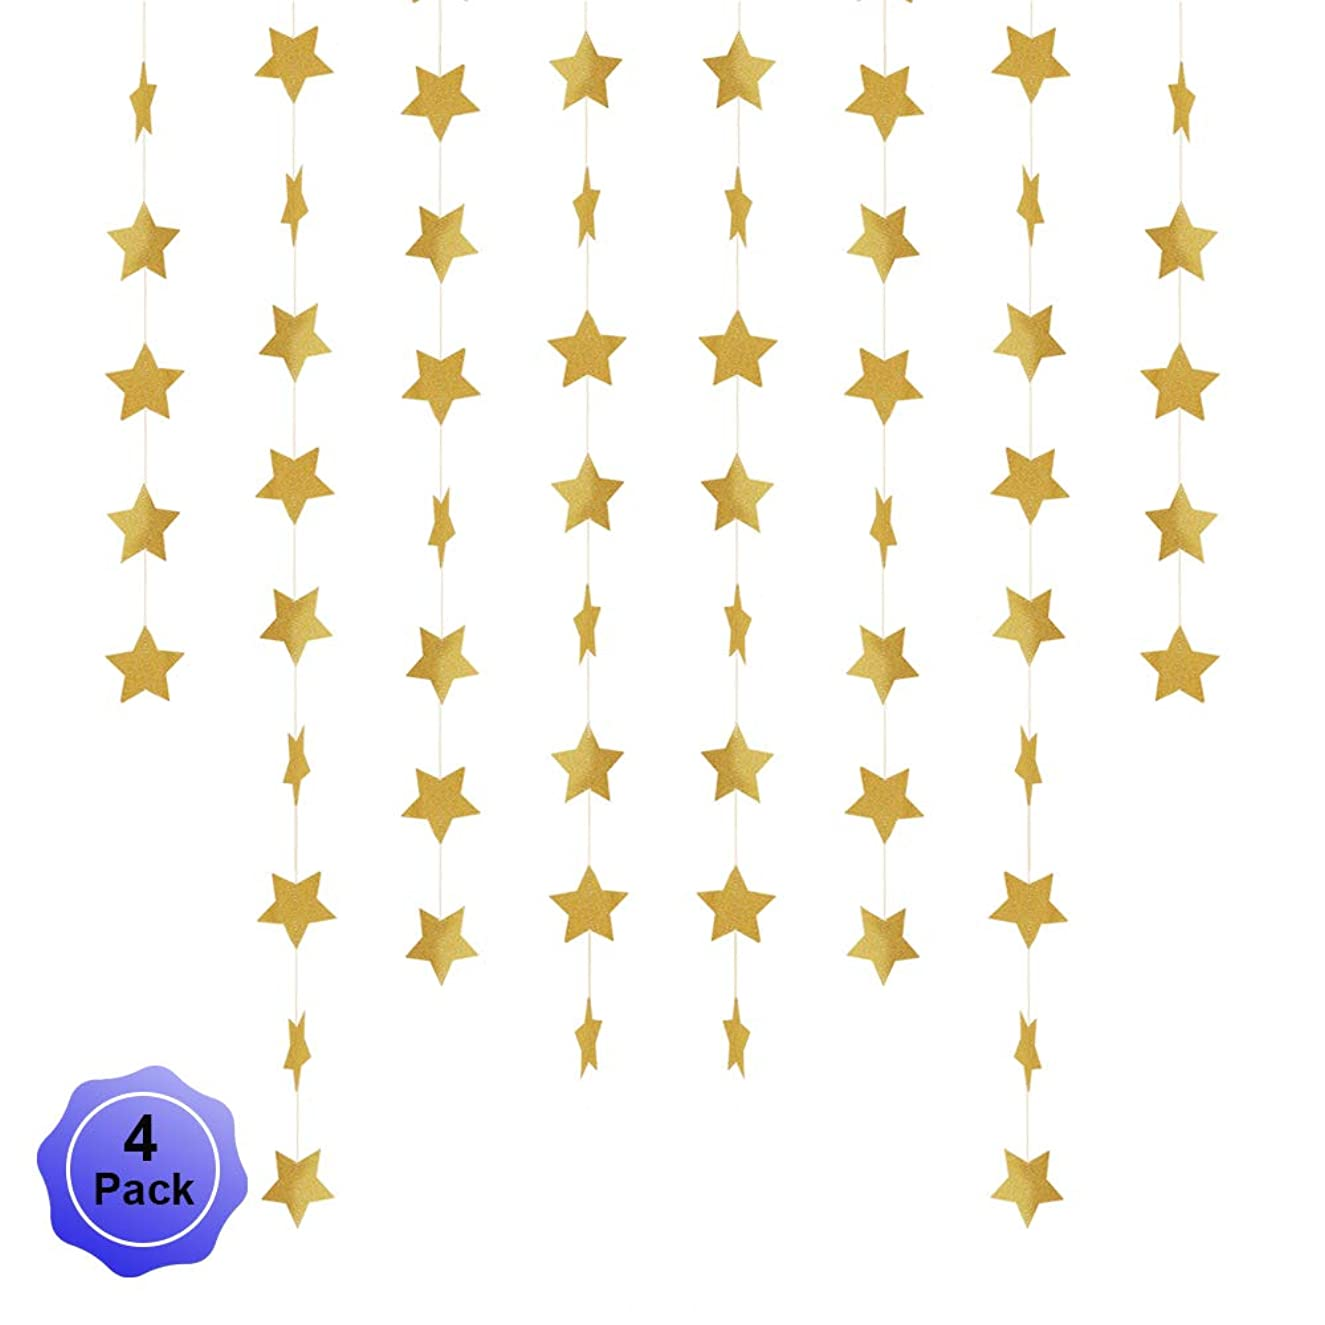 Star Banner Garland Decorations Stars Paper Birthday Party Banner Twinkle Hanging Bunting Banner Gold Glitter Sparkling Star Garland for Wedding Christmas Halloween Photo Booth Props Golden 4 Pack